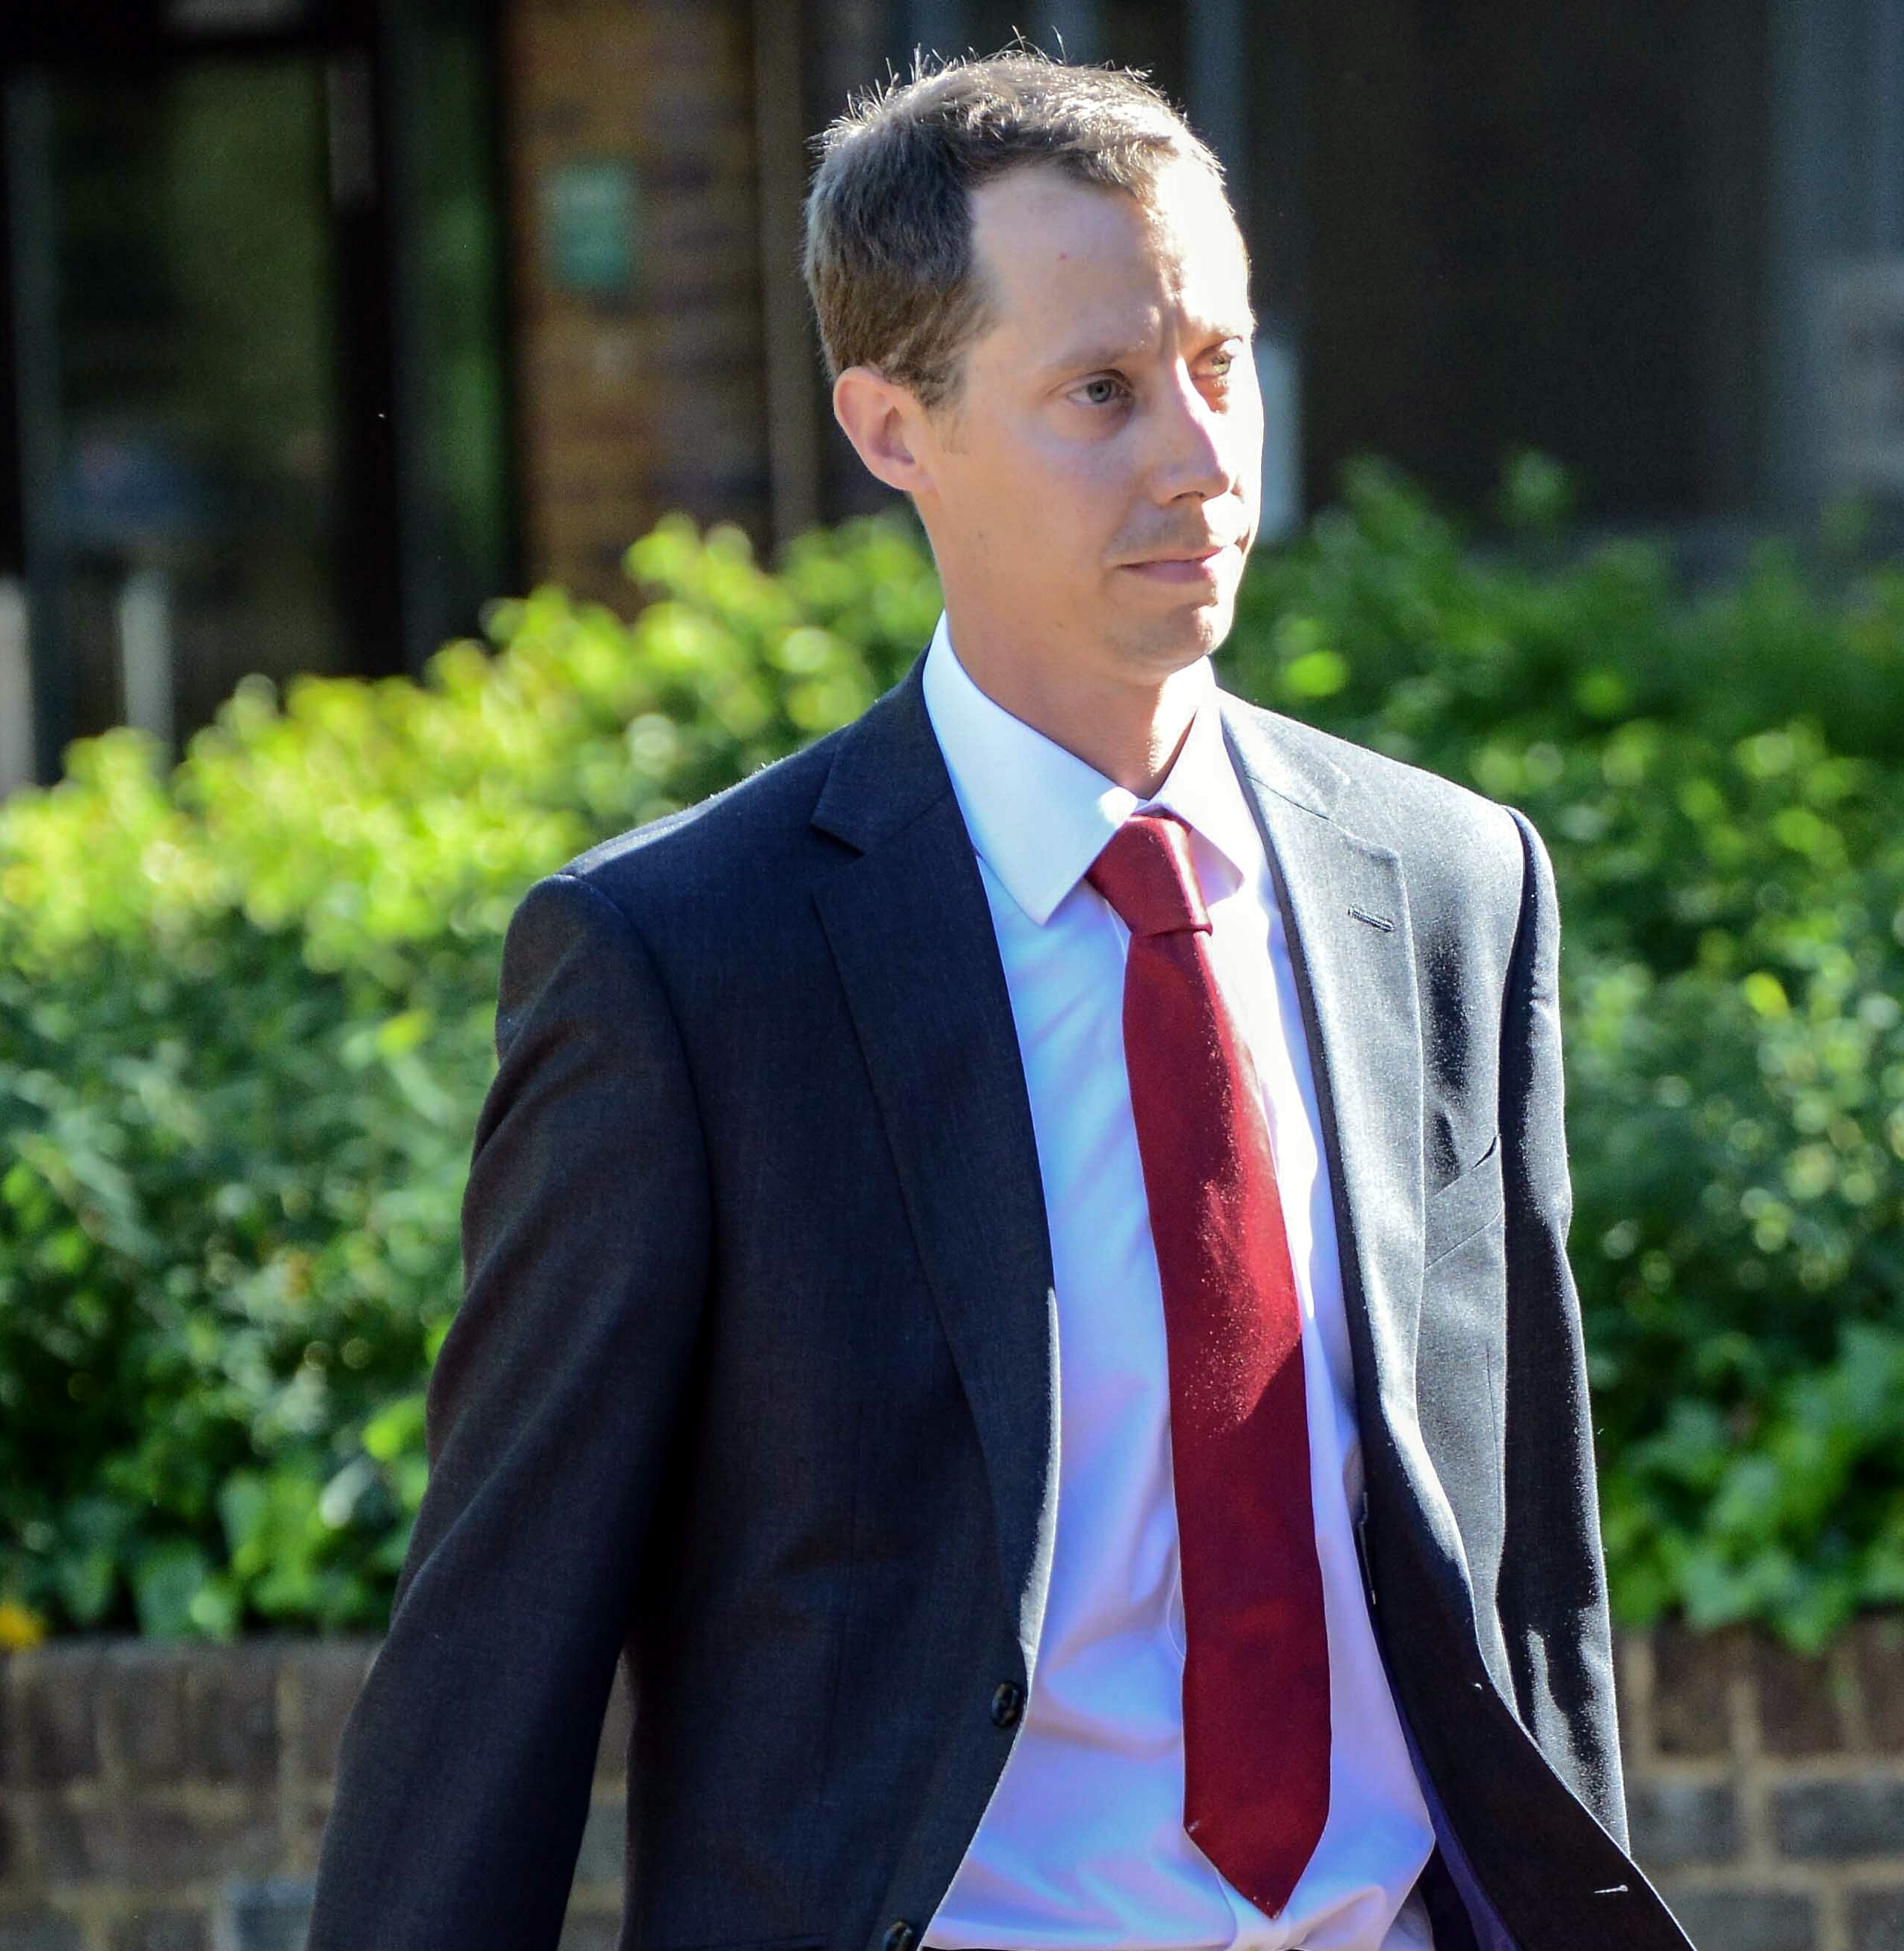 Teacher cleared of raping girl at public school